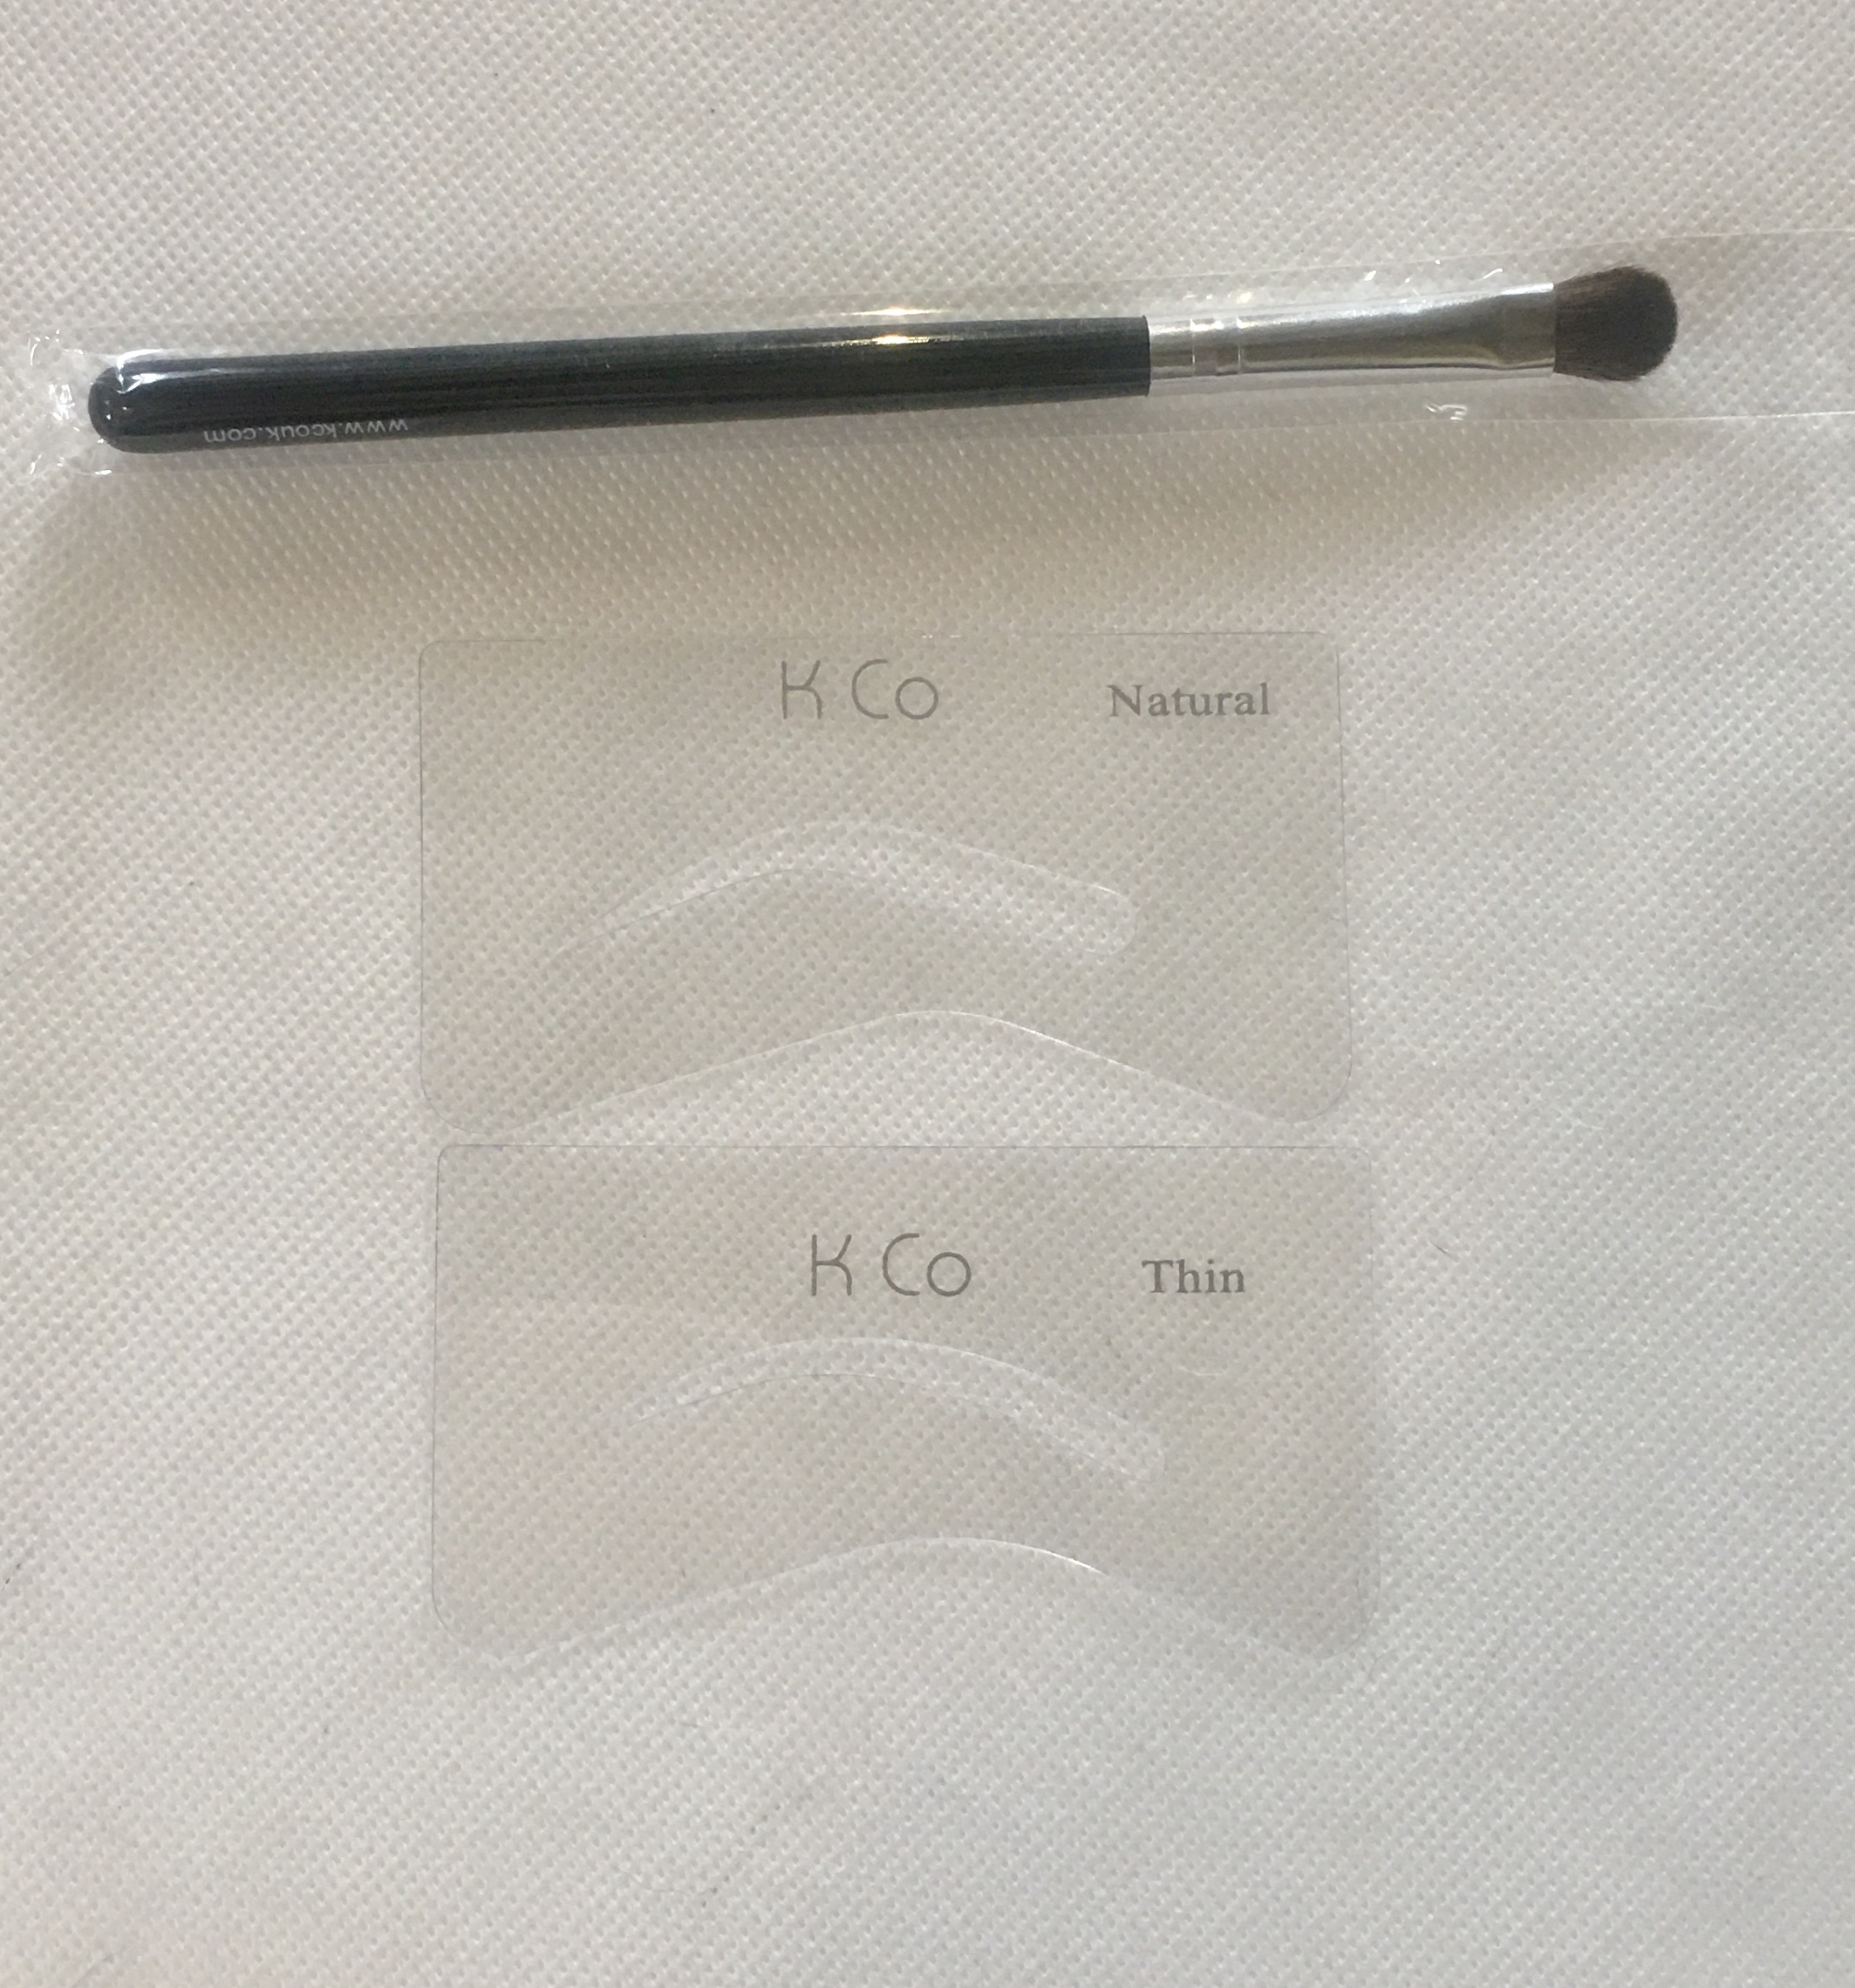 Kco Eye Brow Stencils Set and Eye Shadow Brush